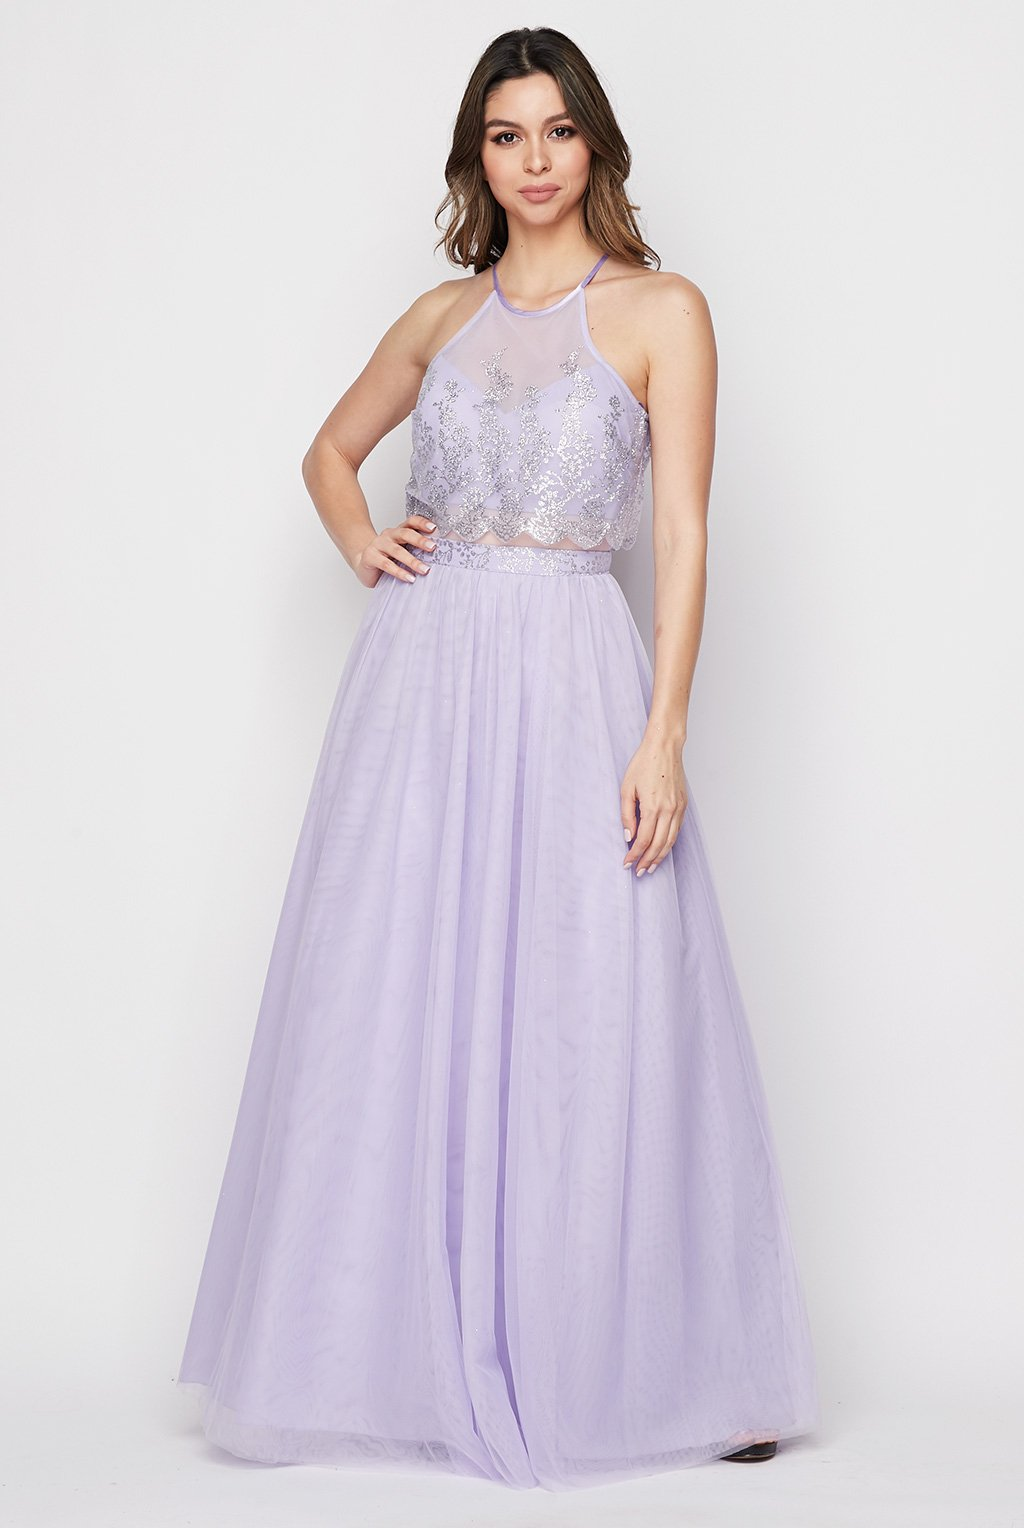 Teeze Me | Sleeveless Halter Glitter Embellished Illusion Popover Top Long Dress | Lilac/Silver